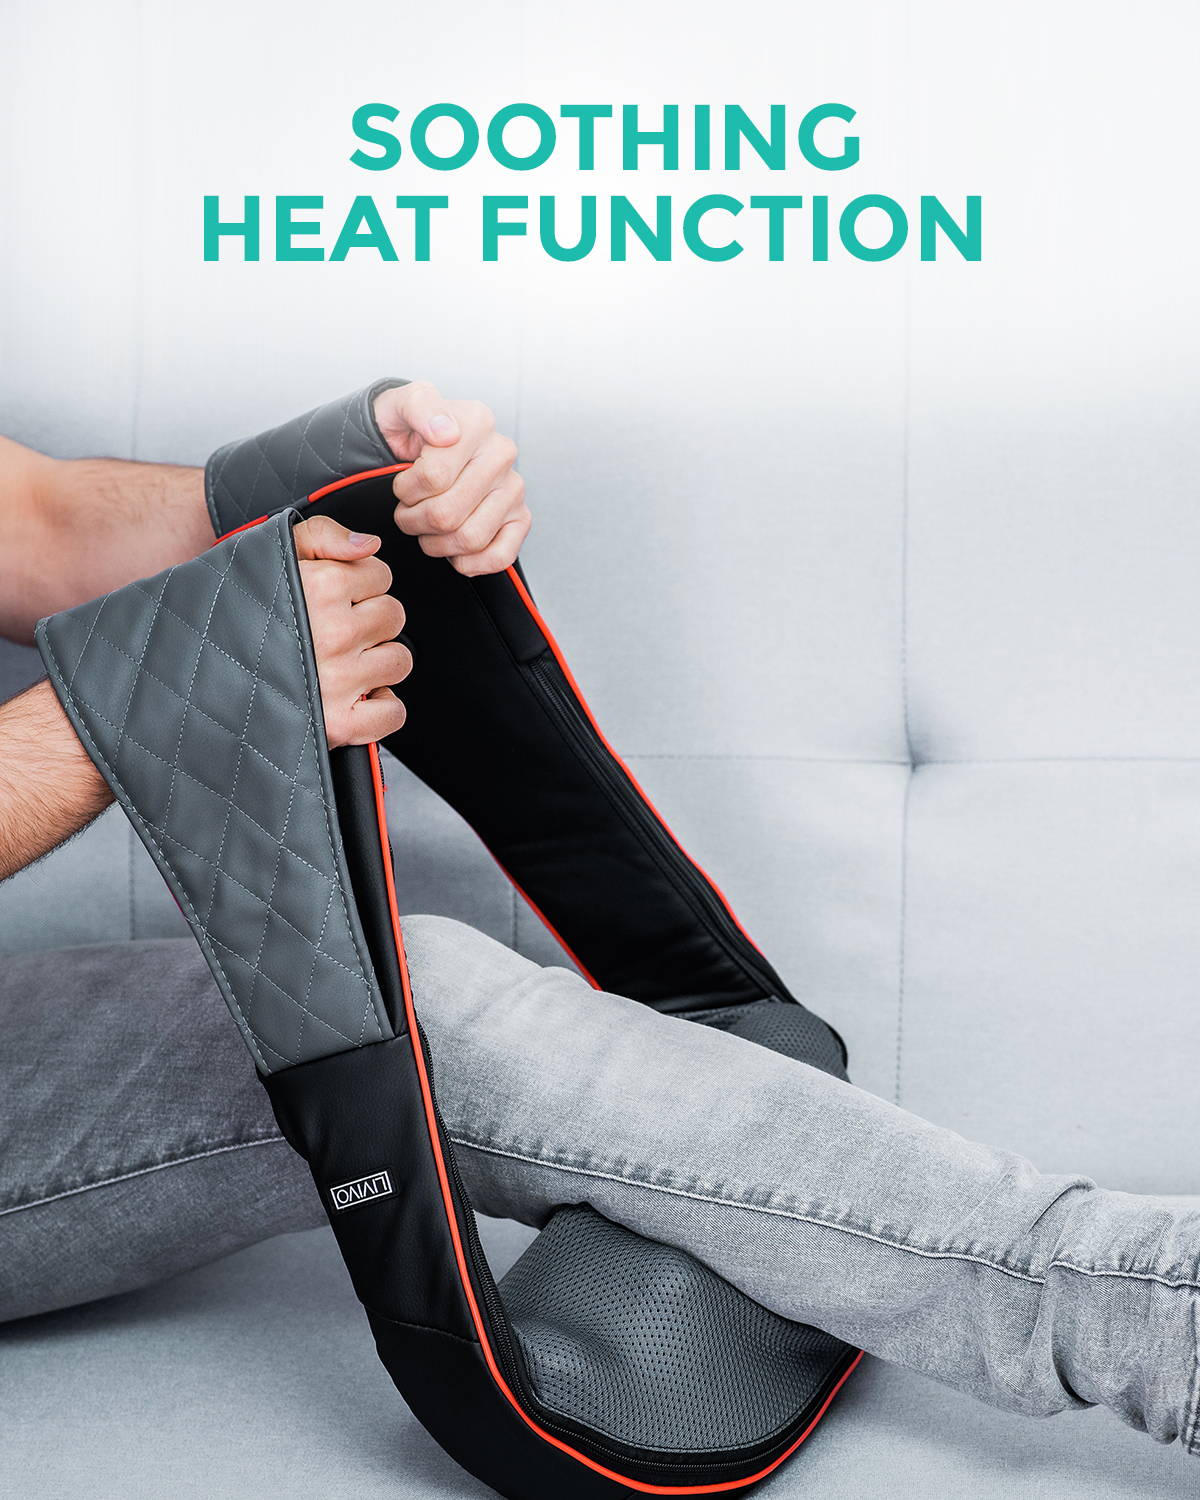 Soothing Heat Function